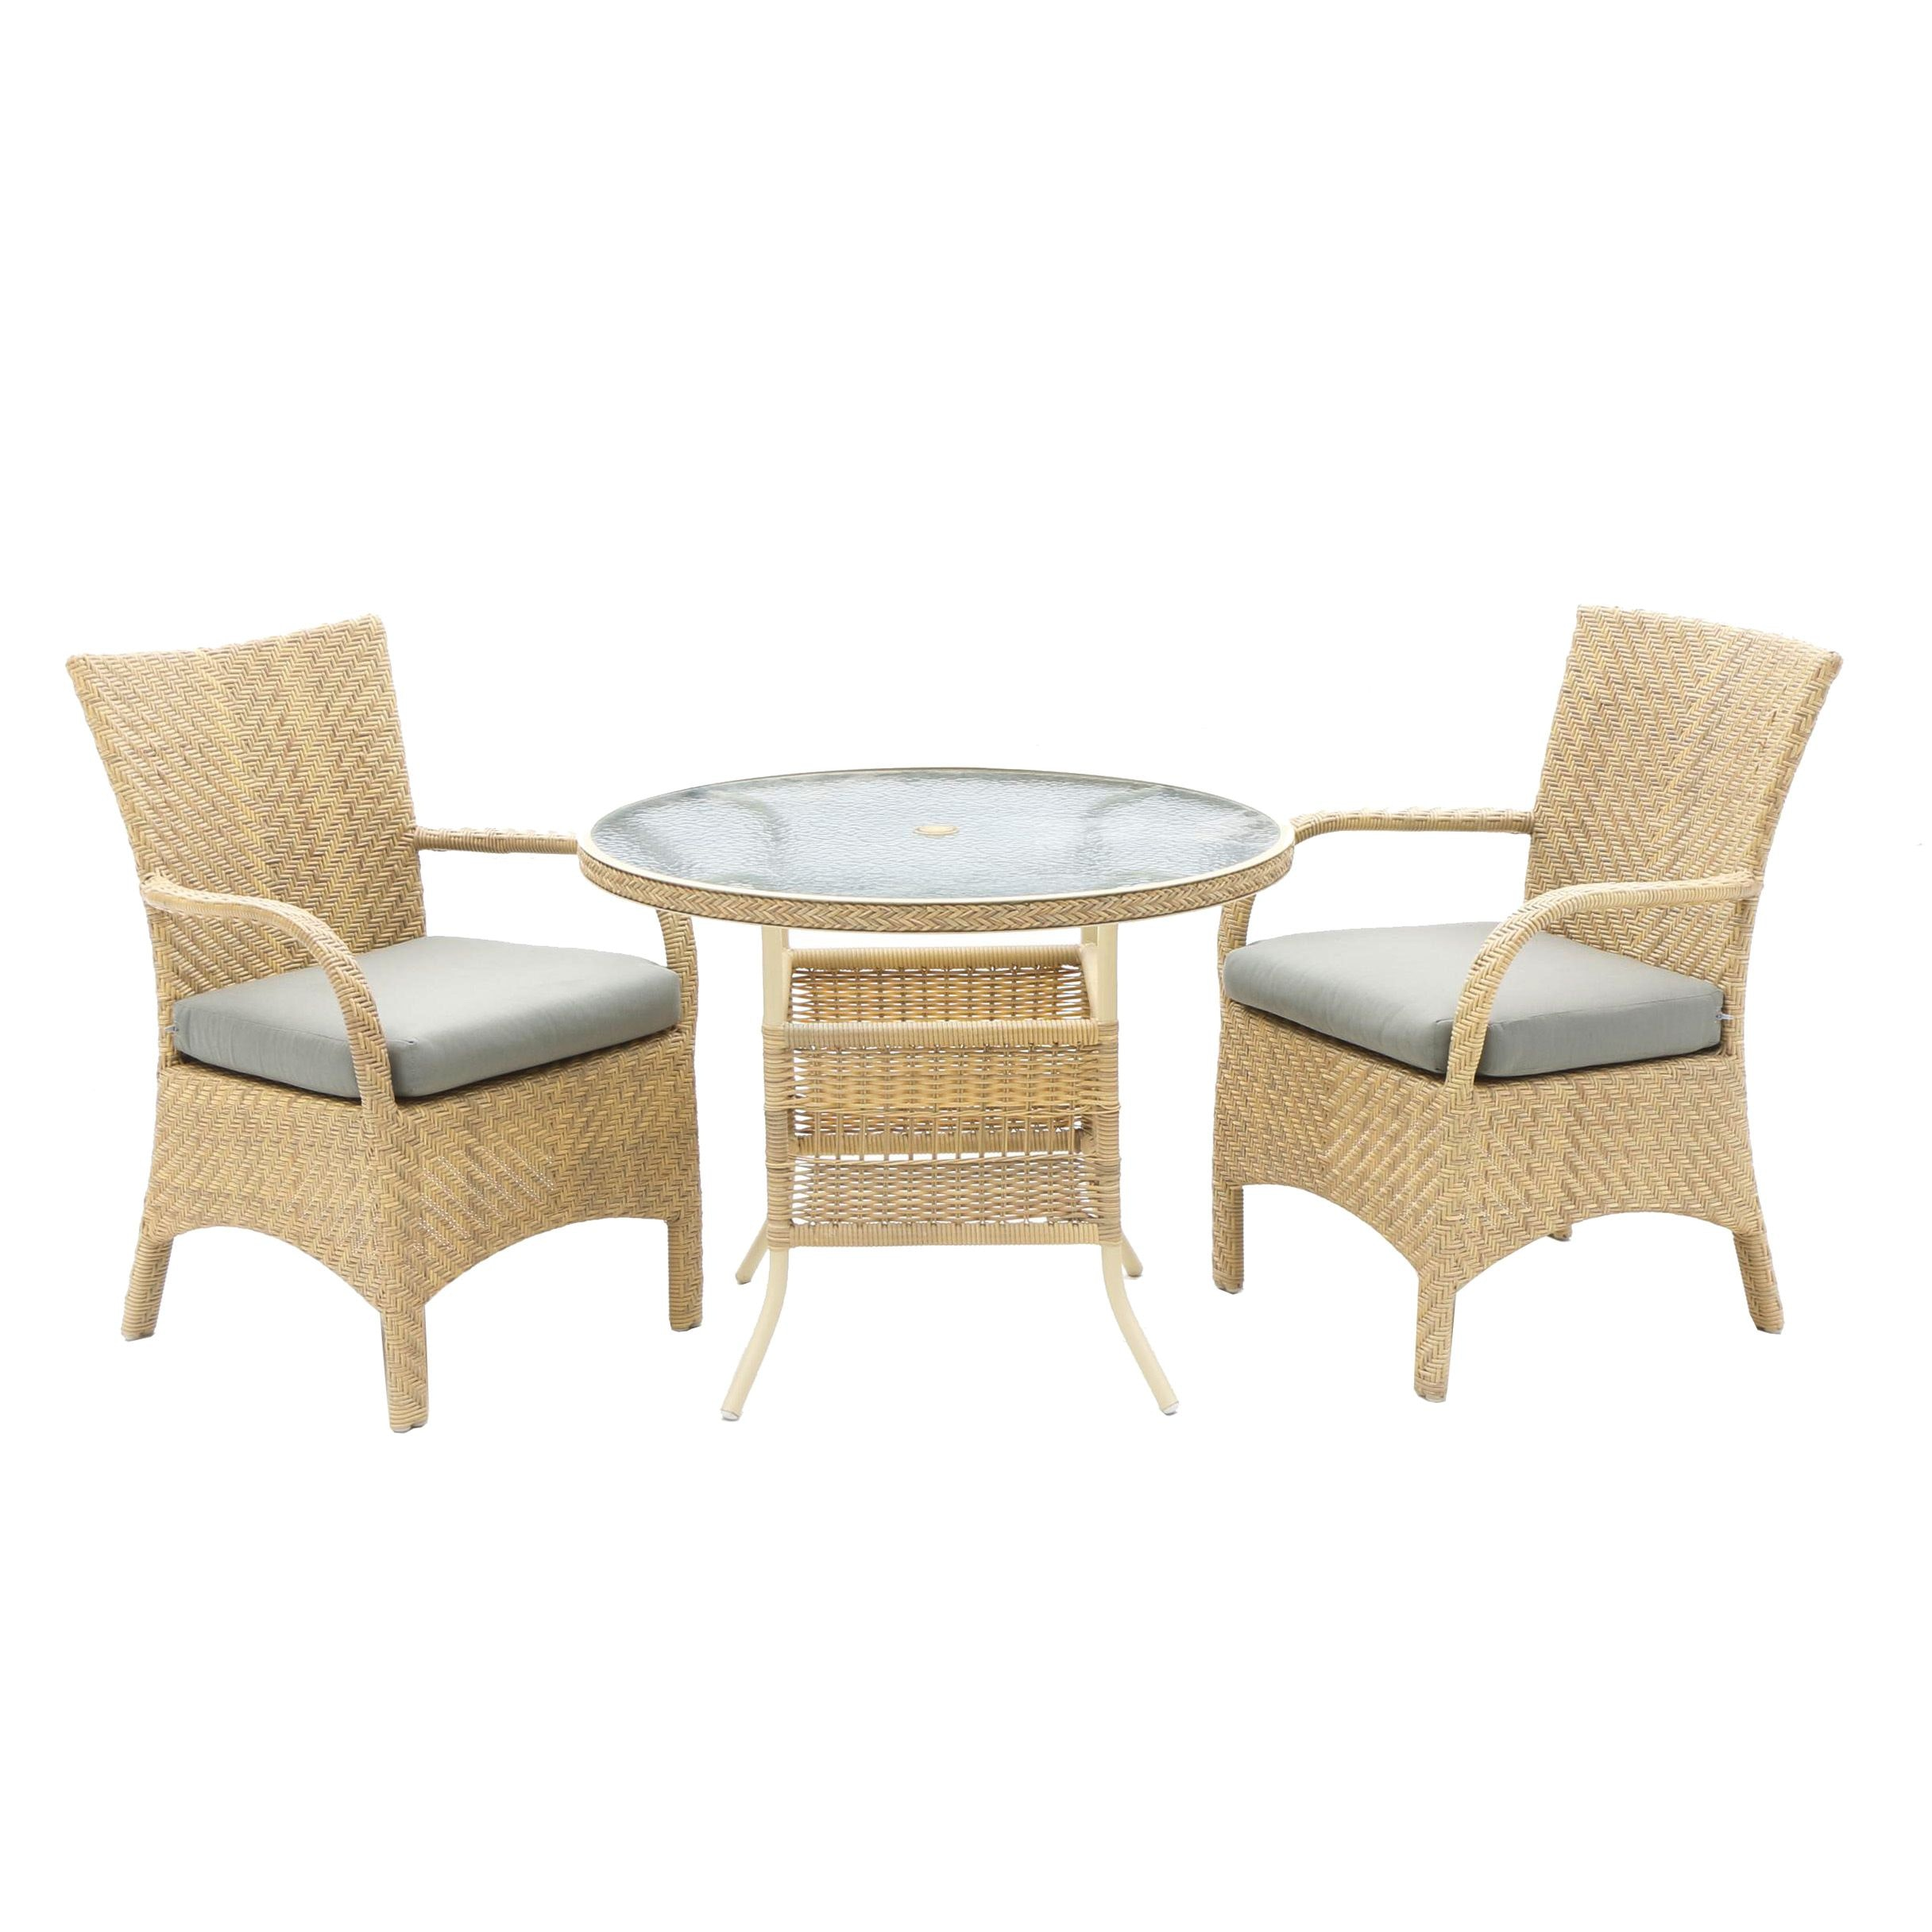 Wicker Patio Set with Small Dining Table and Two Chairs